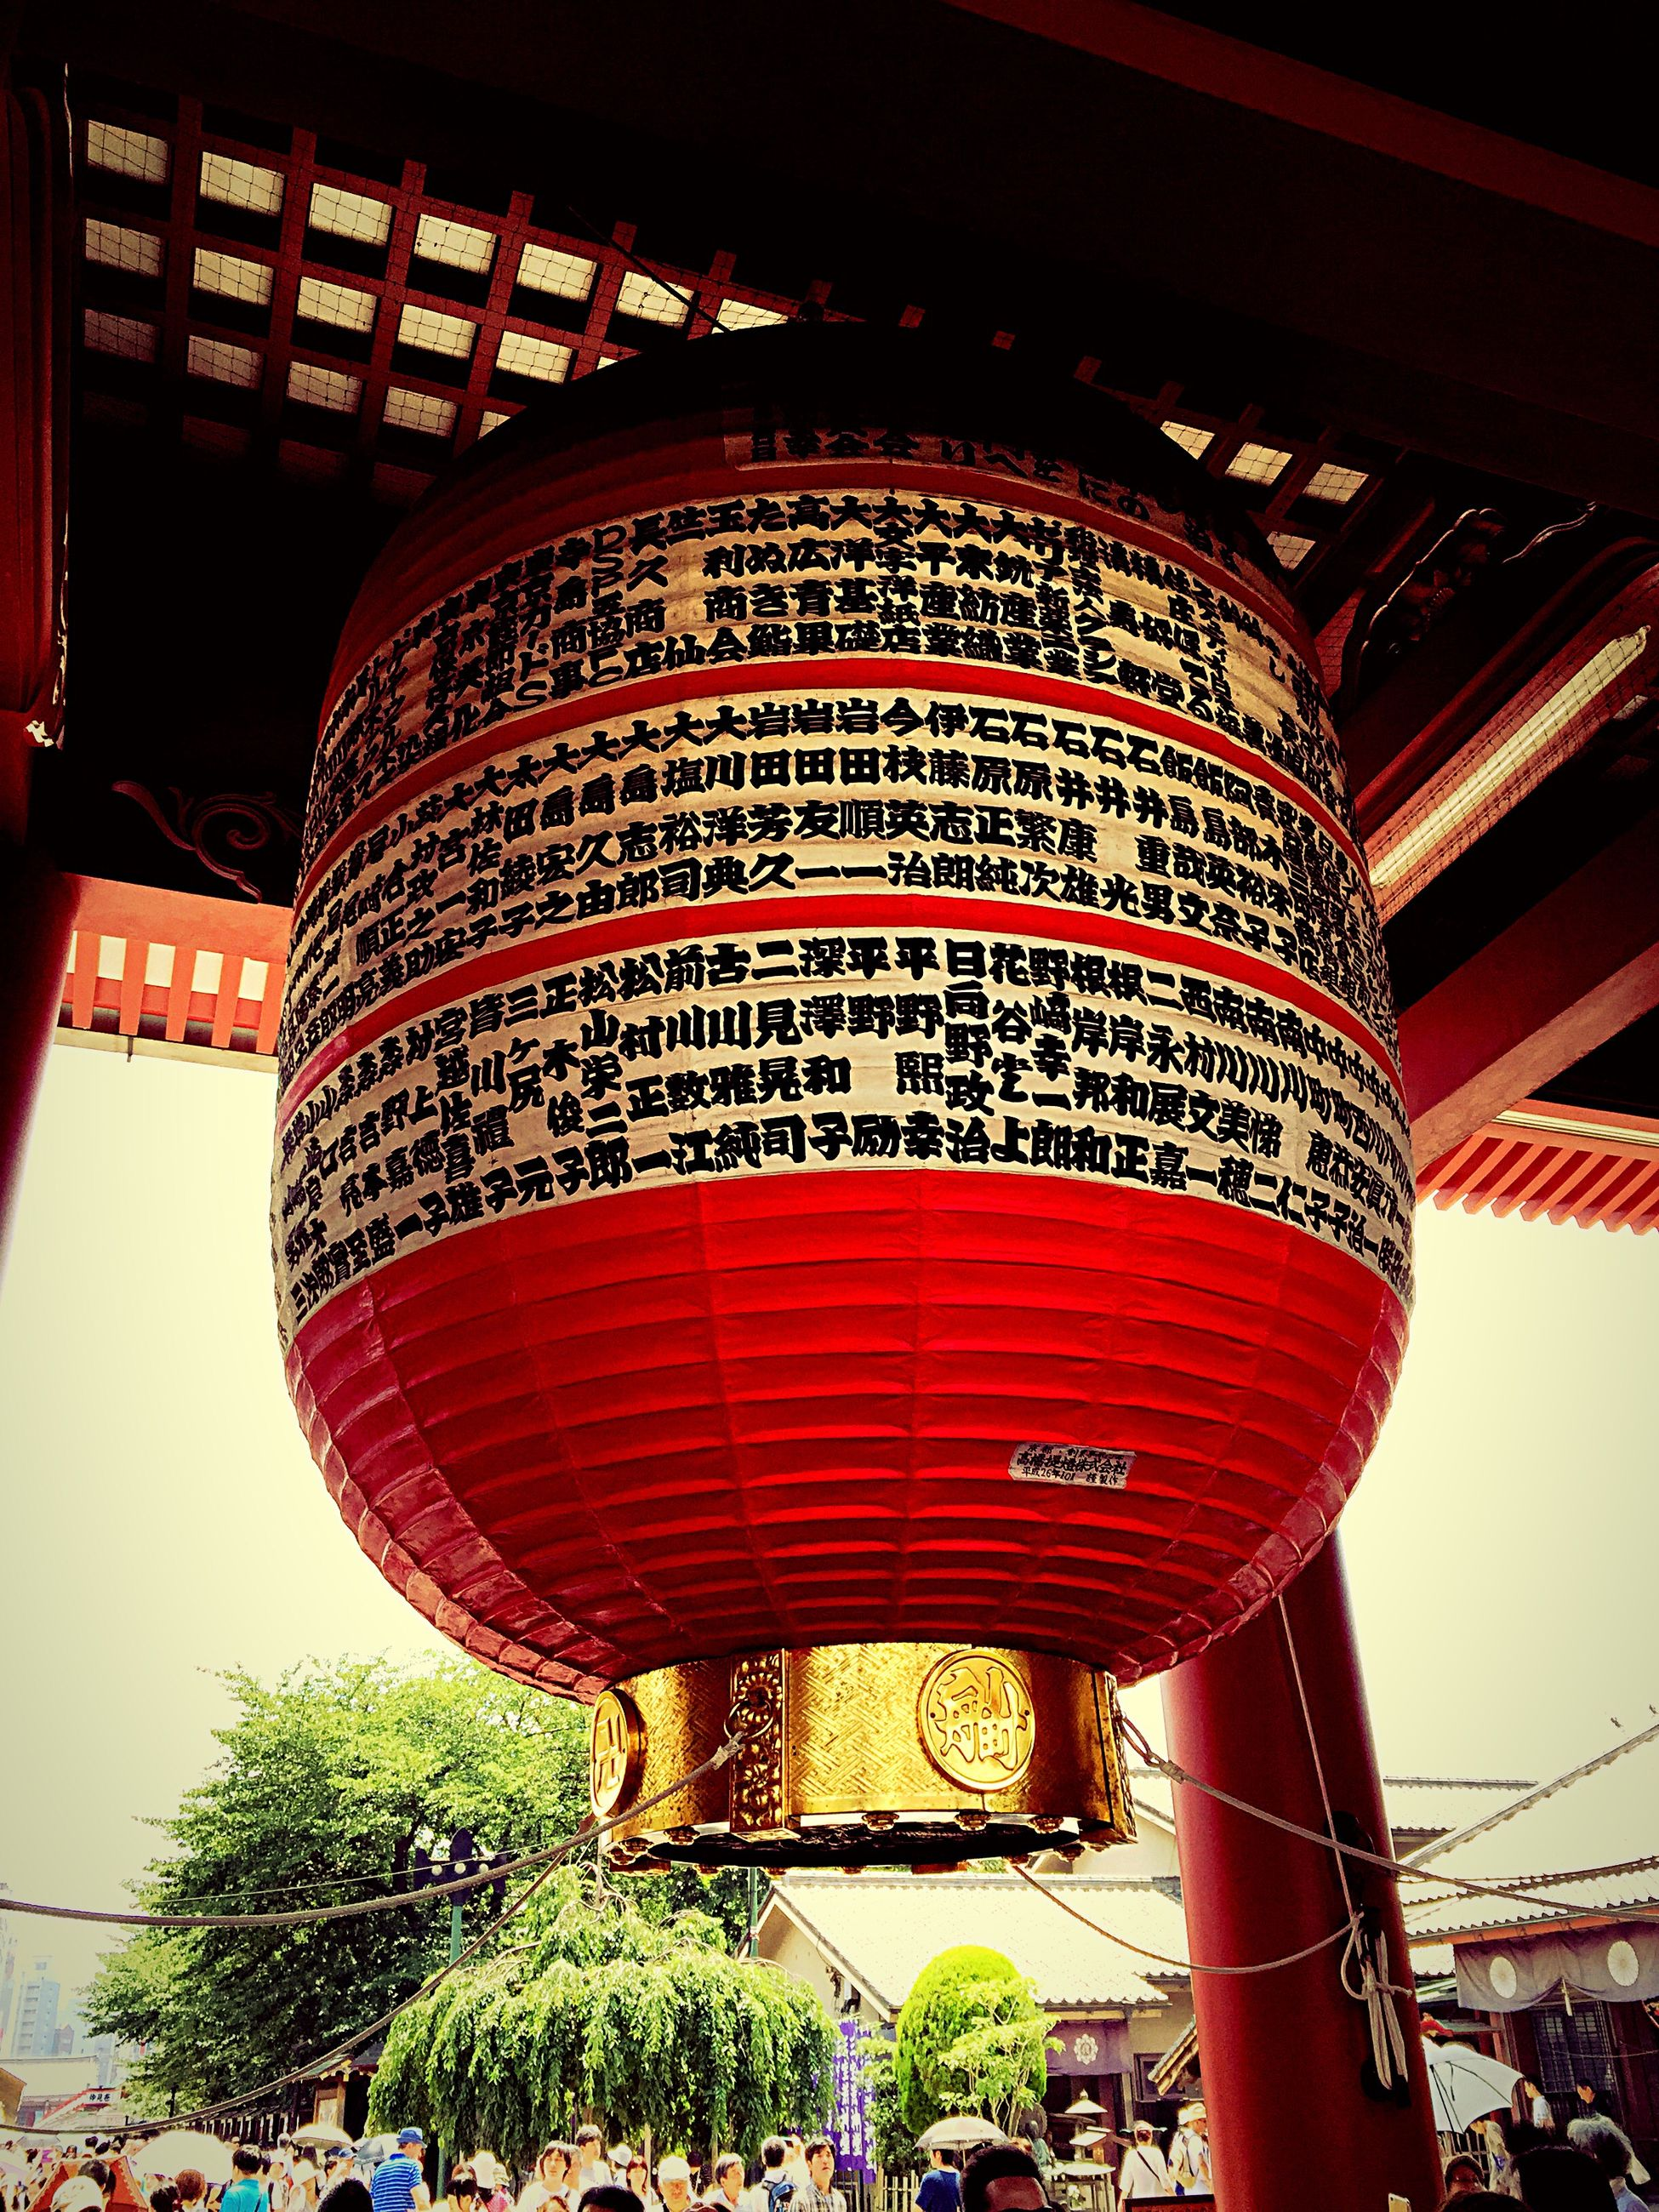 built structure, illuminated, architecture, low angle view, red, lighting equipment, building exterior, tree, decoration, lantern, night, hanging, no people, ceiling, outdoors, chinese lantern, culture, arch, multi colored